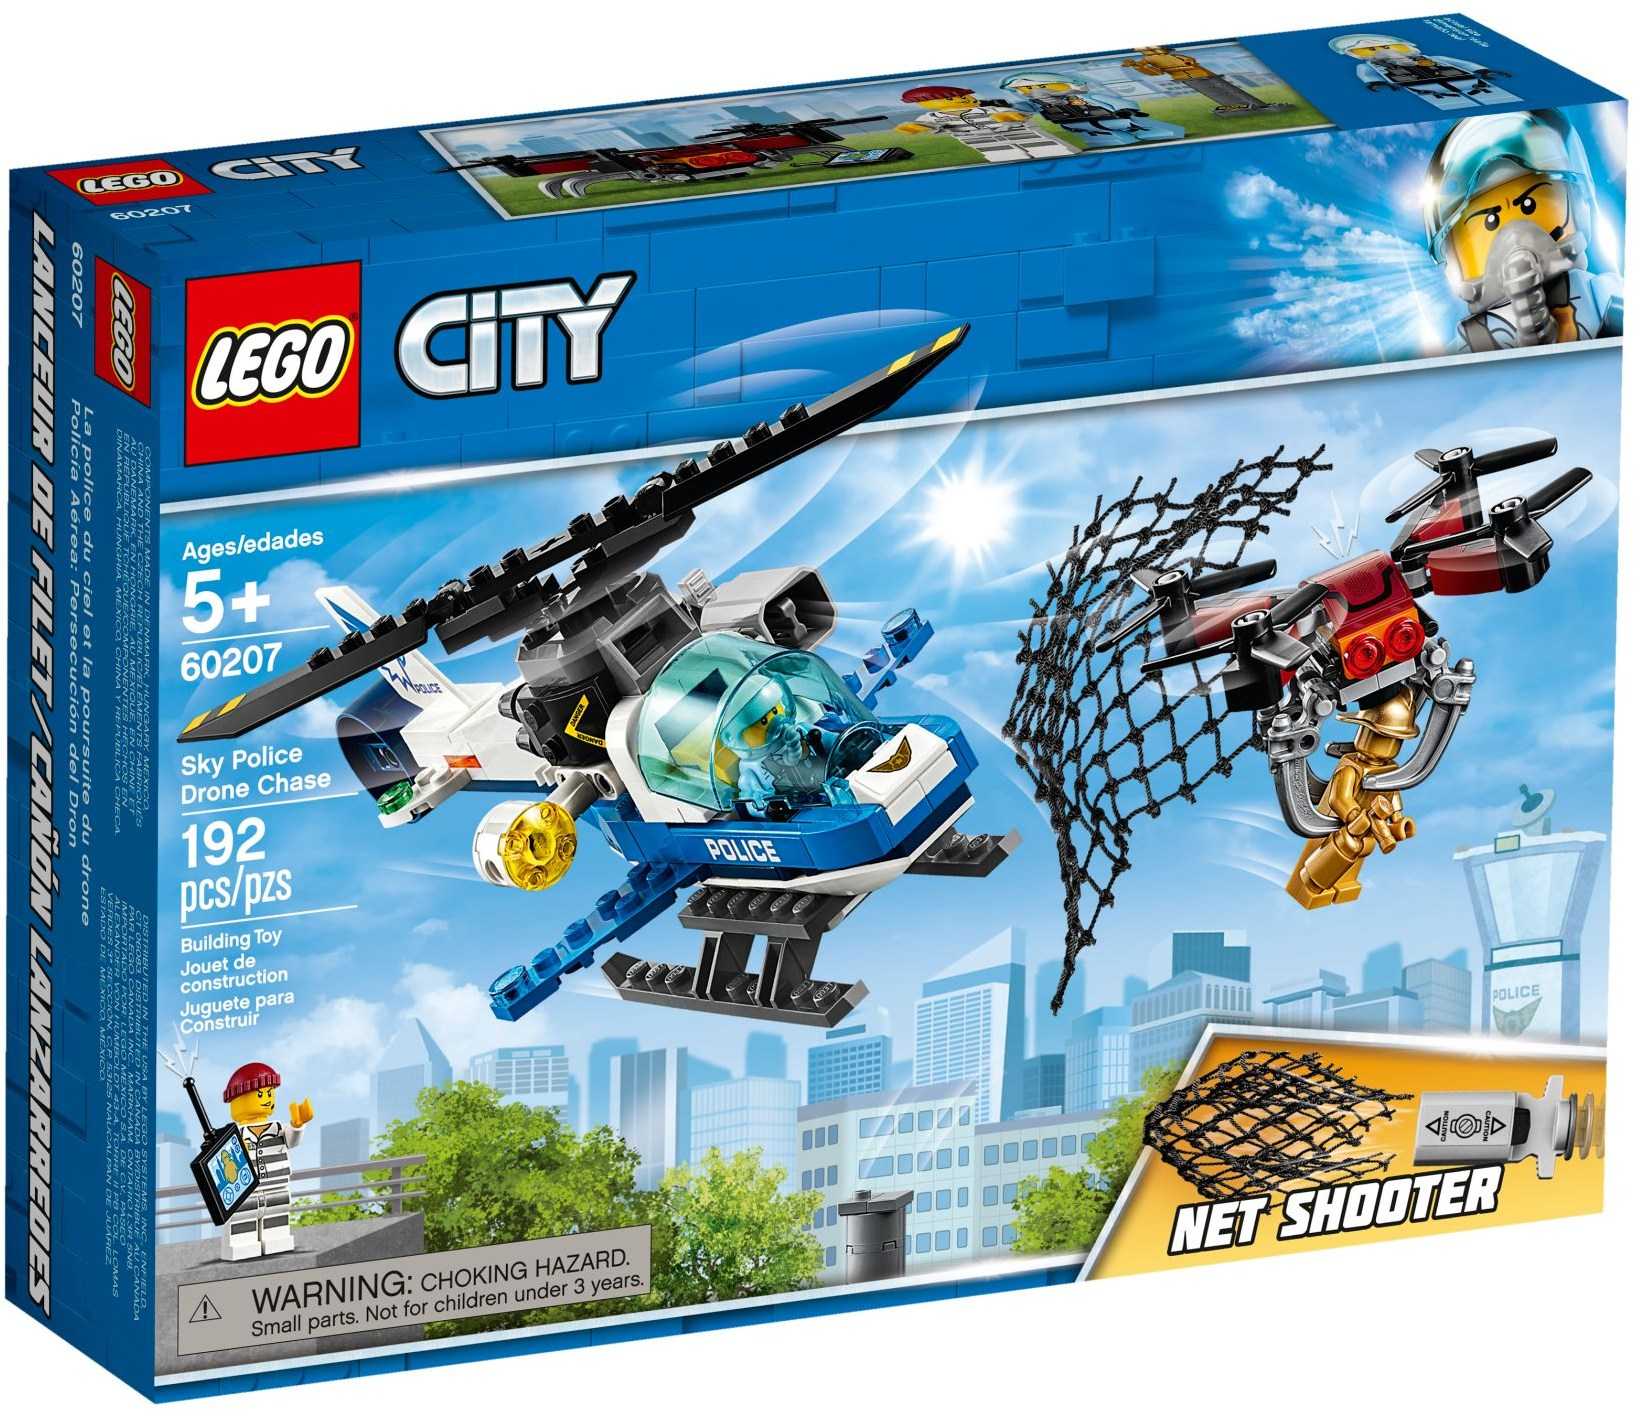 LEGO SKY POLICE DRONE CHASE - 60207